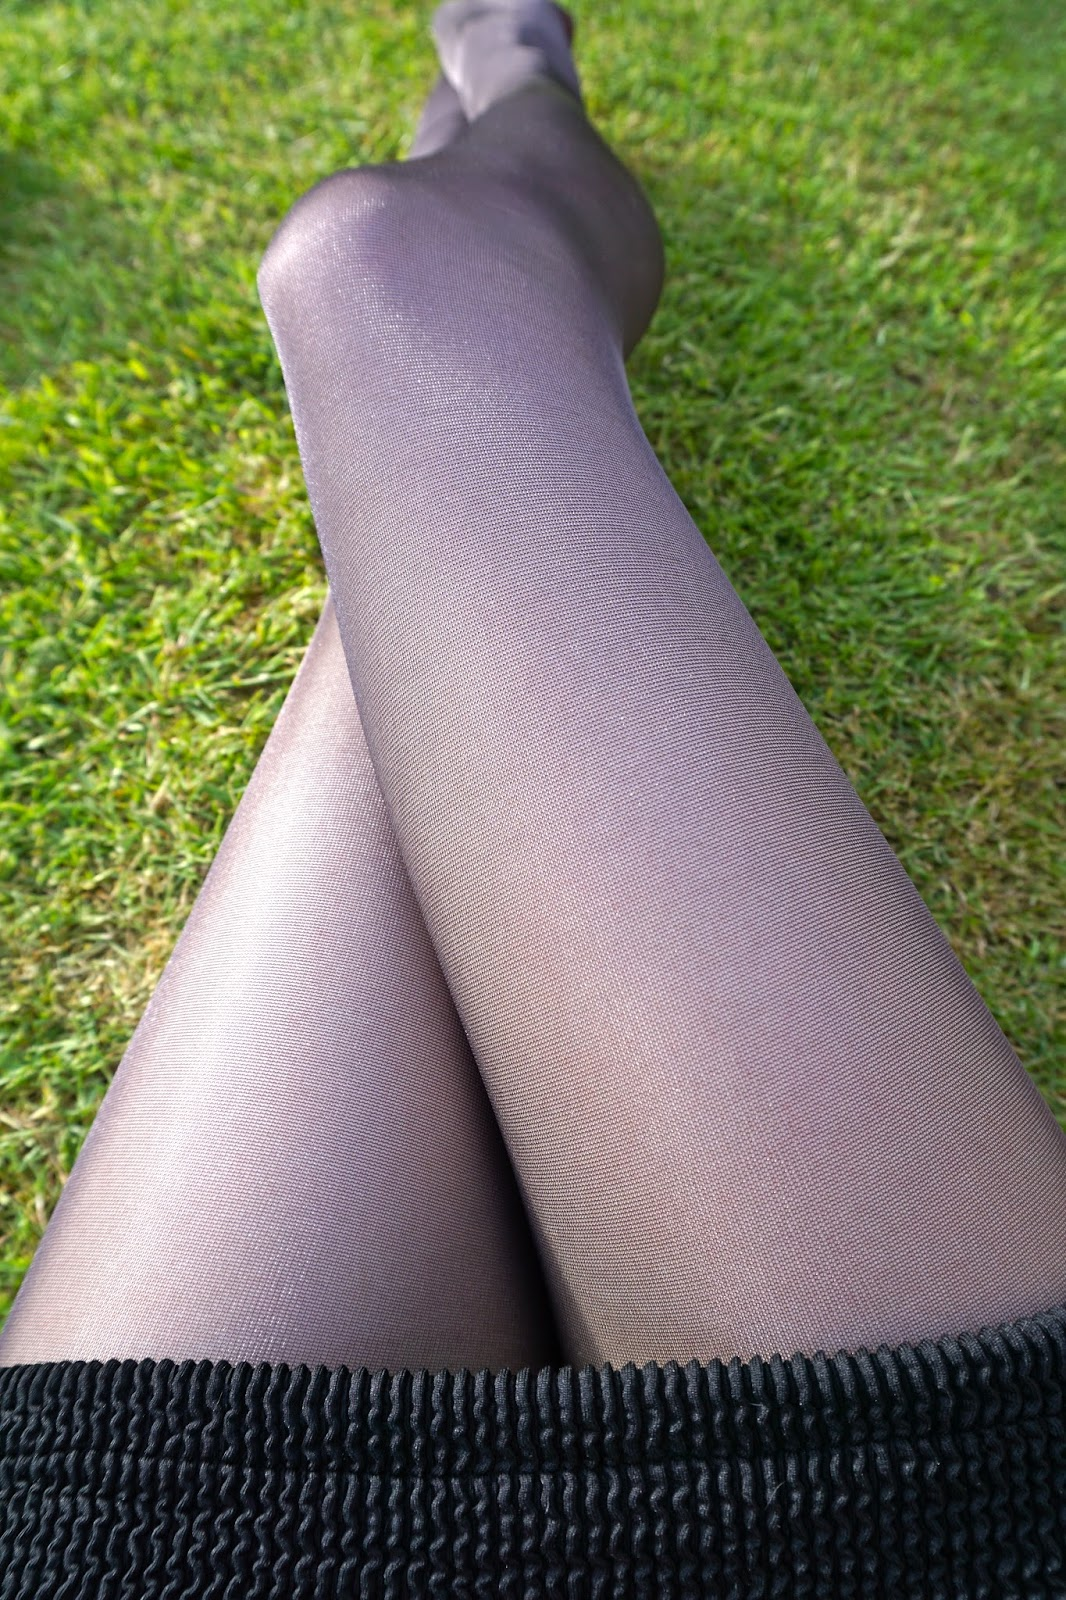 0eae0f48252 Tights made for the Summer - Pierre Mantoux Eclatant 40 - UK Tights